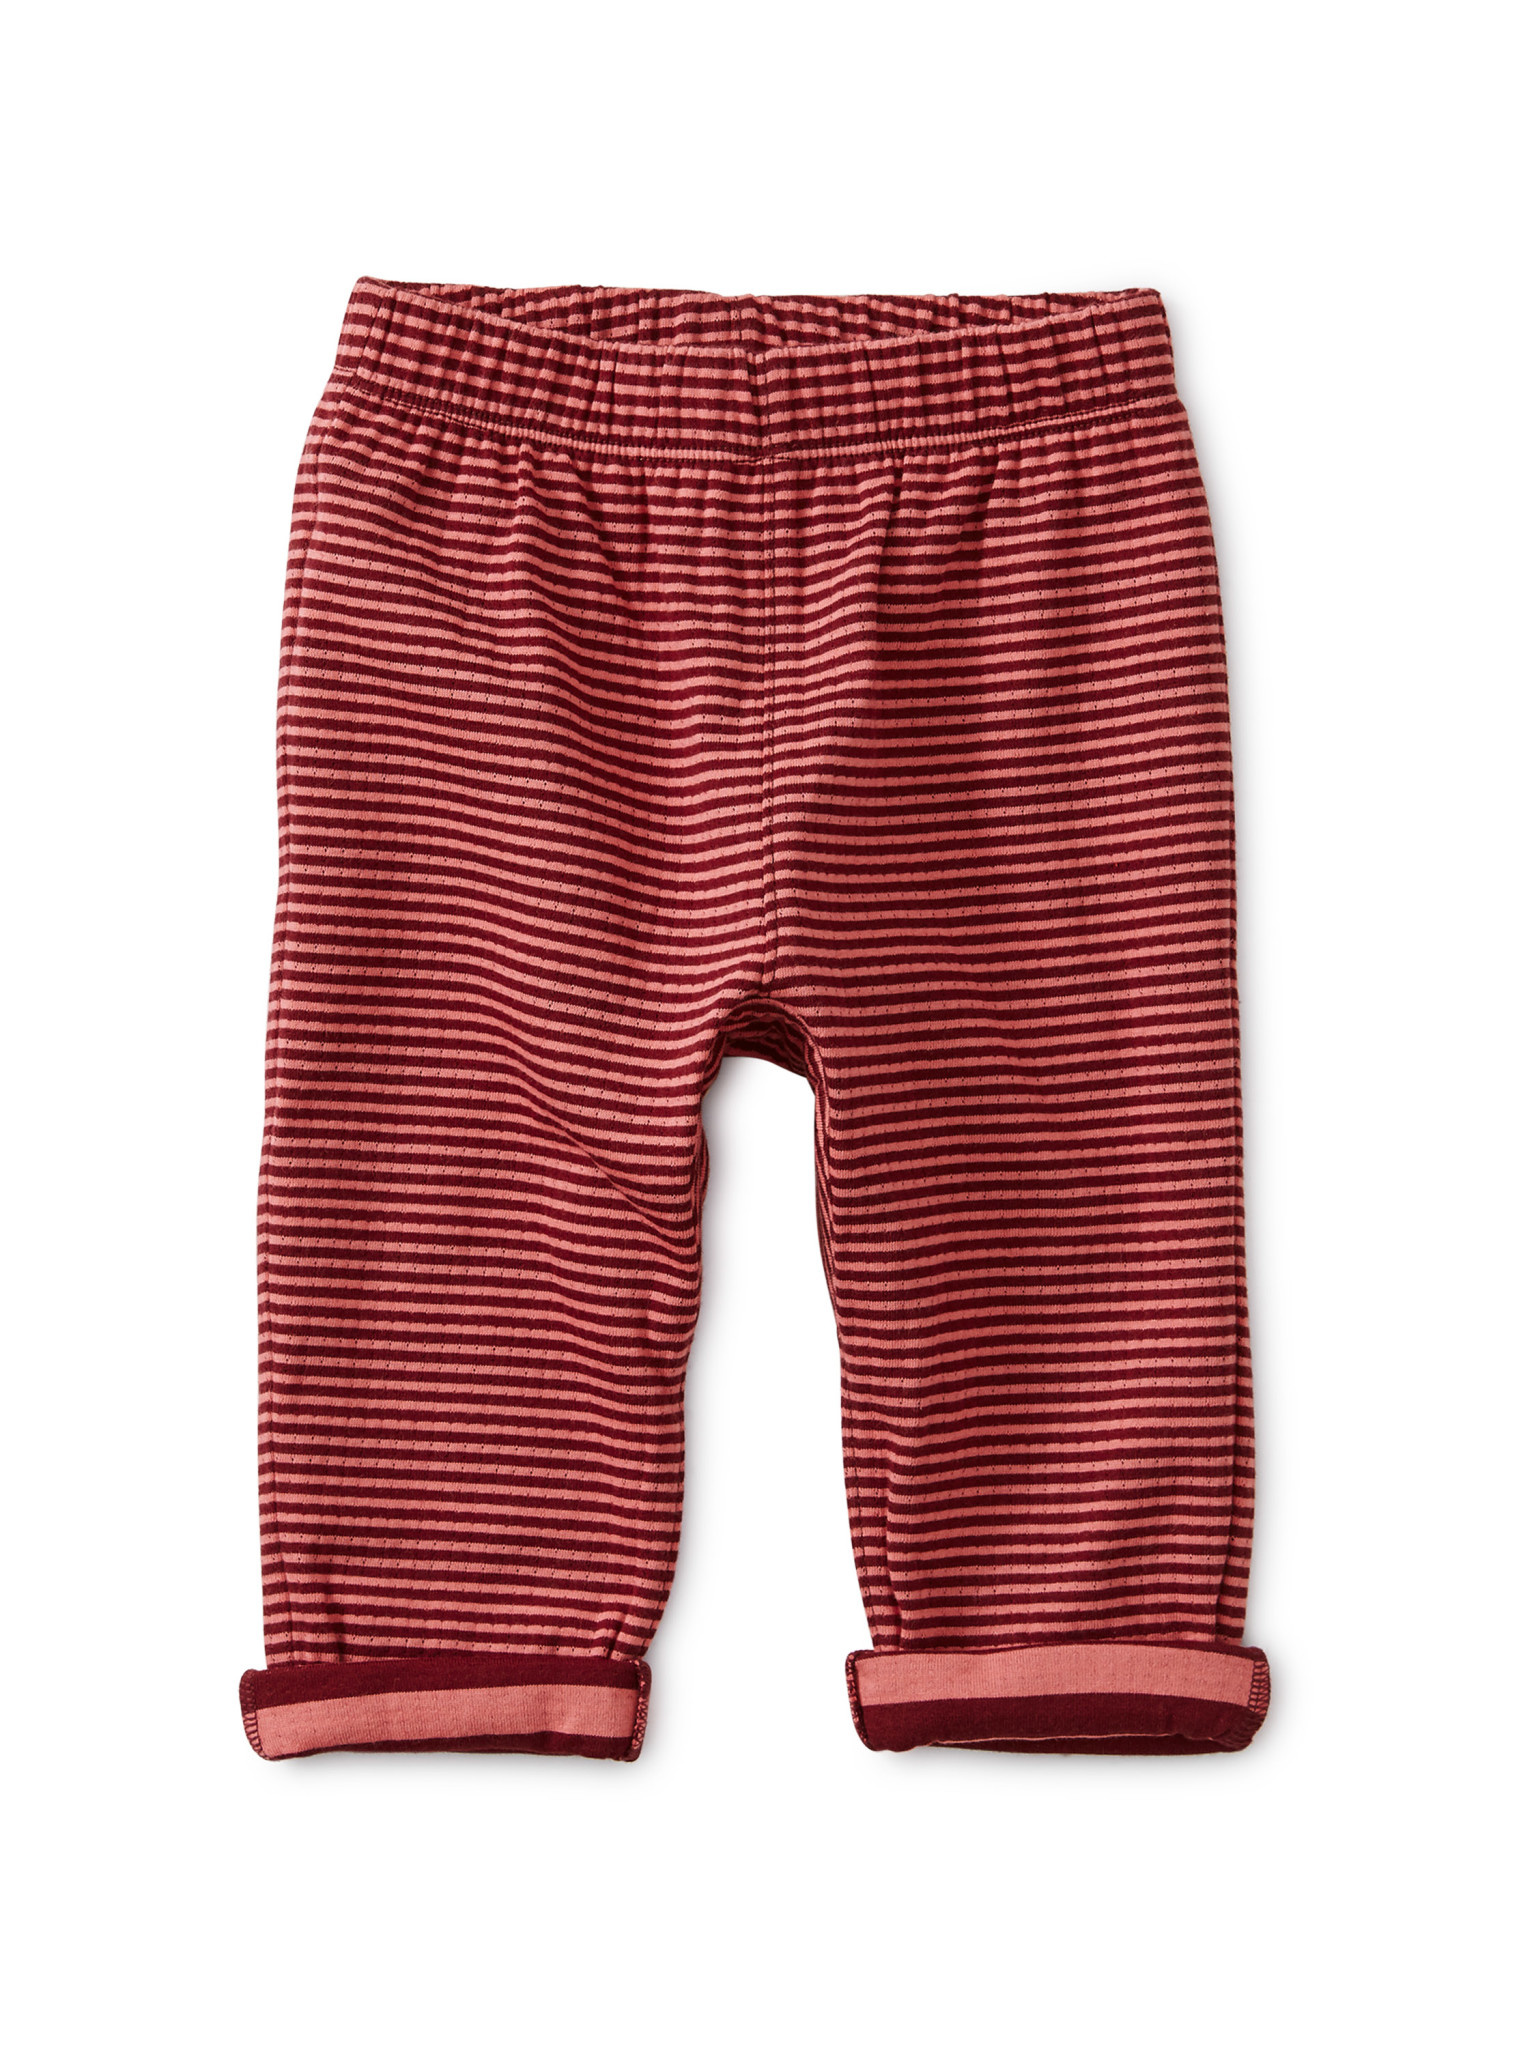 Tea Collection Boysenberry Stripe Double Knit Baby Jogger